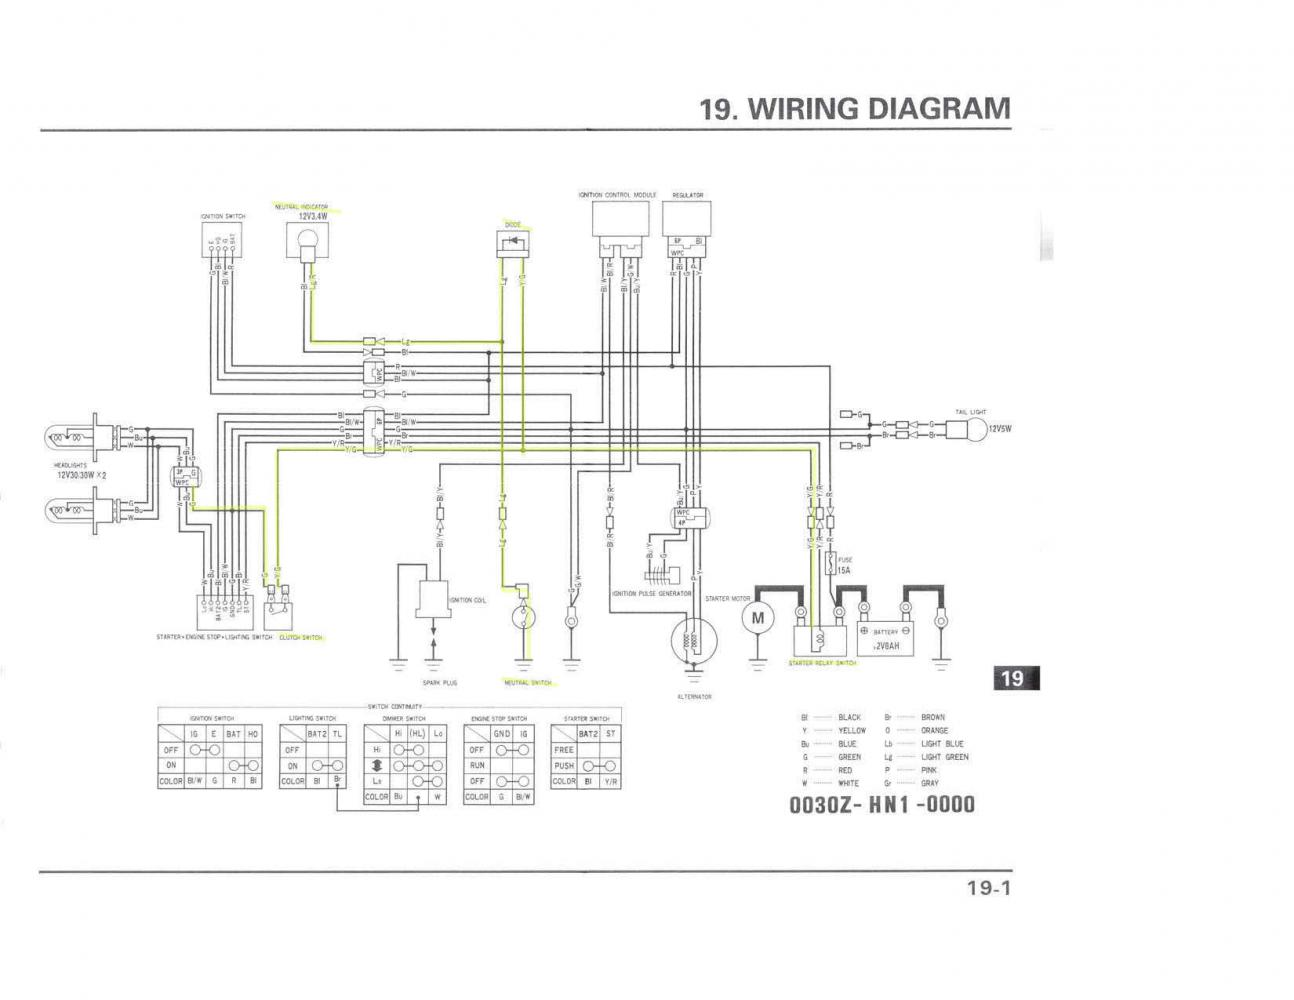 wiring diagram for 2005 honda recon